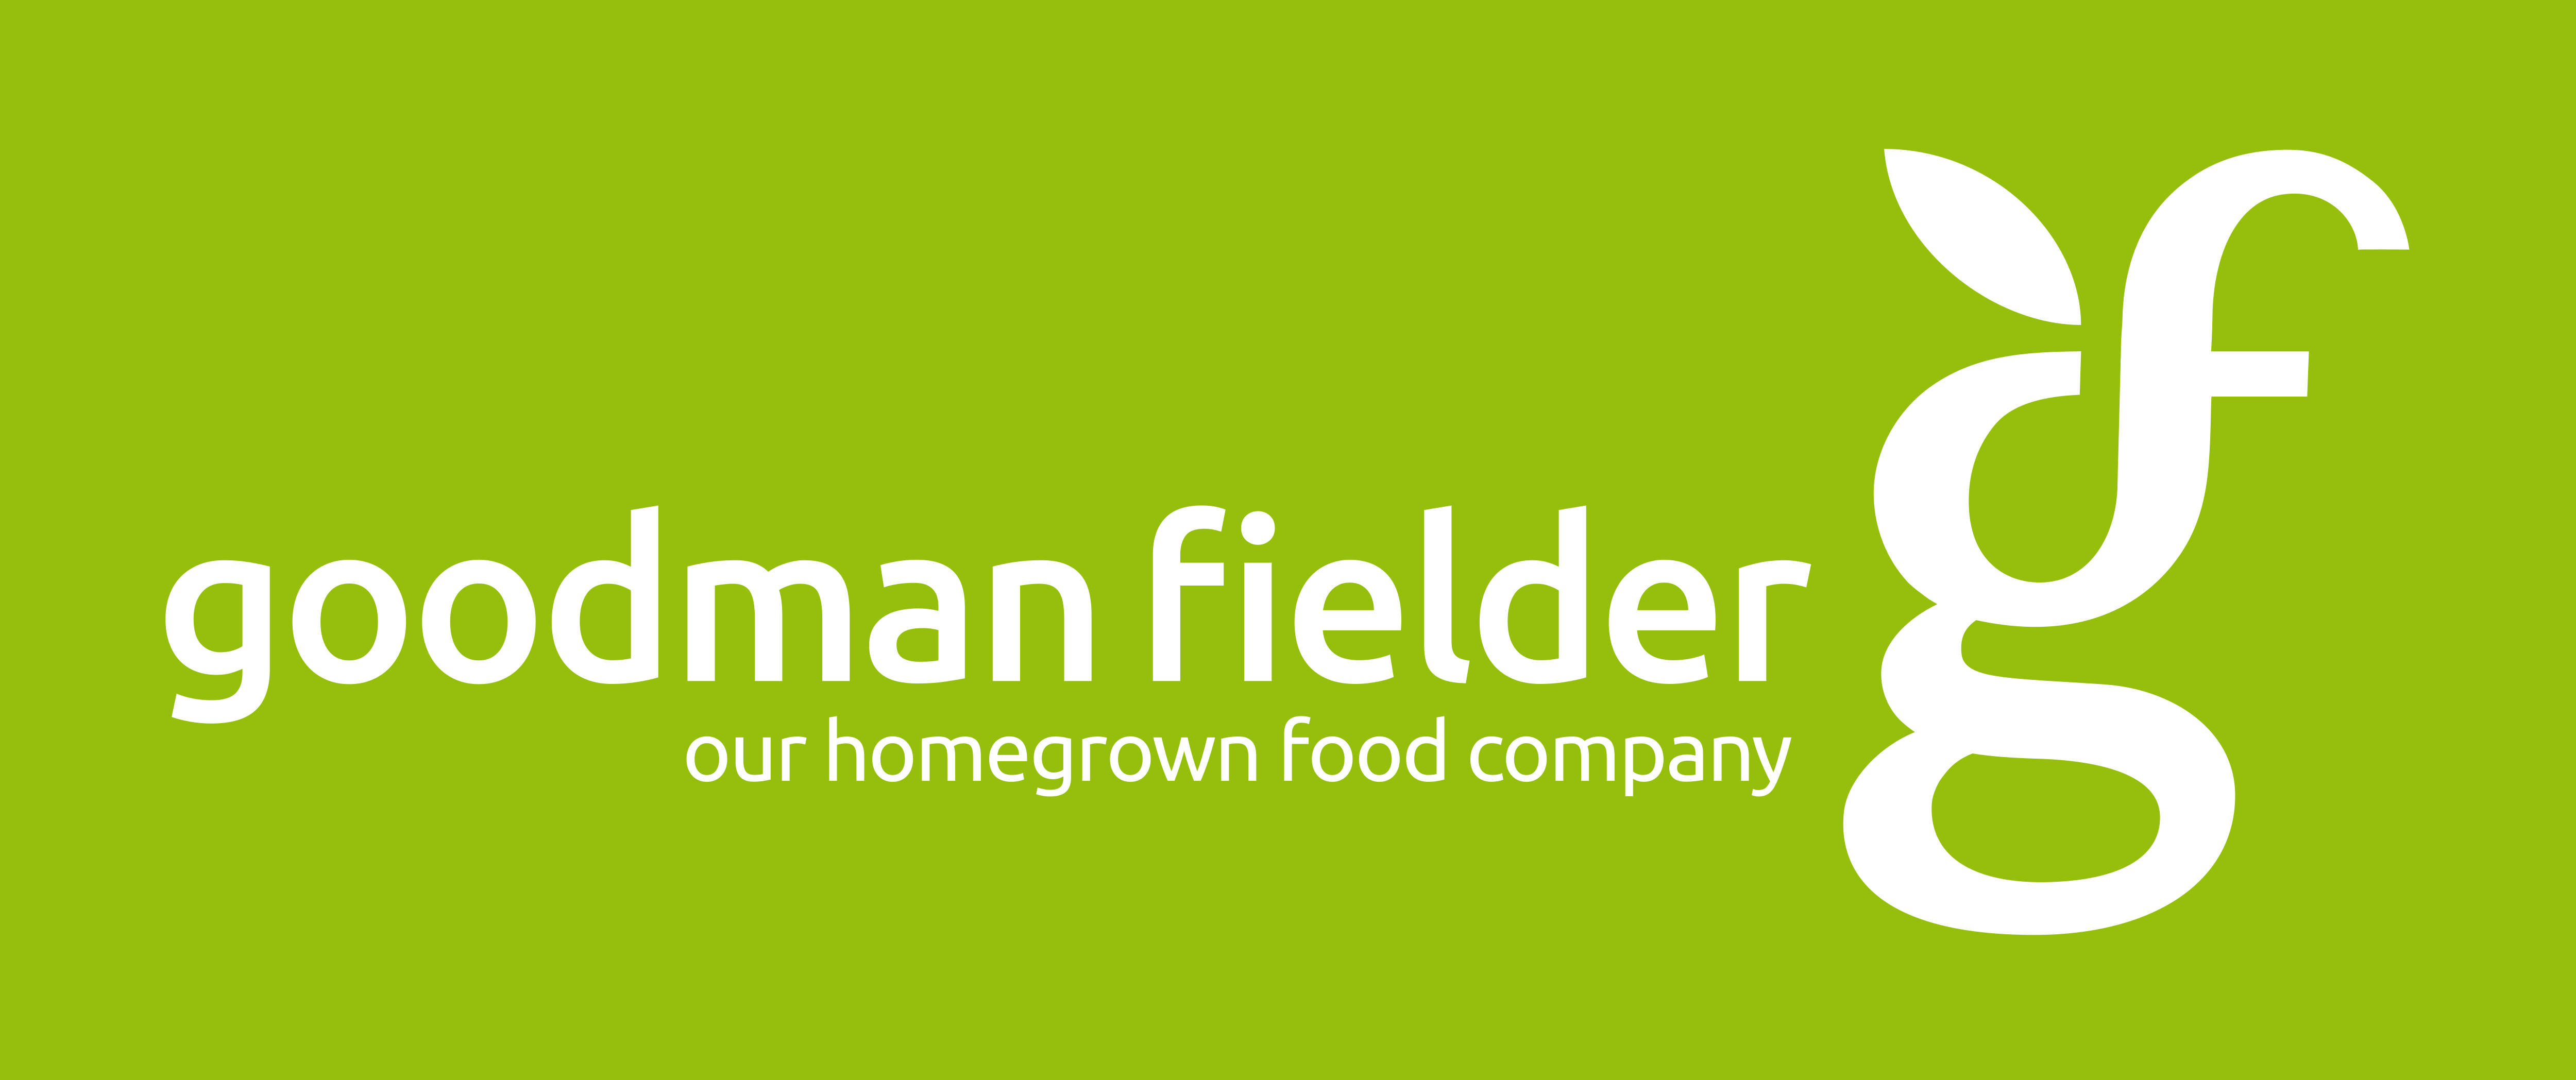 Goodman_Fielder_Logo_full